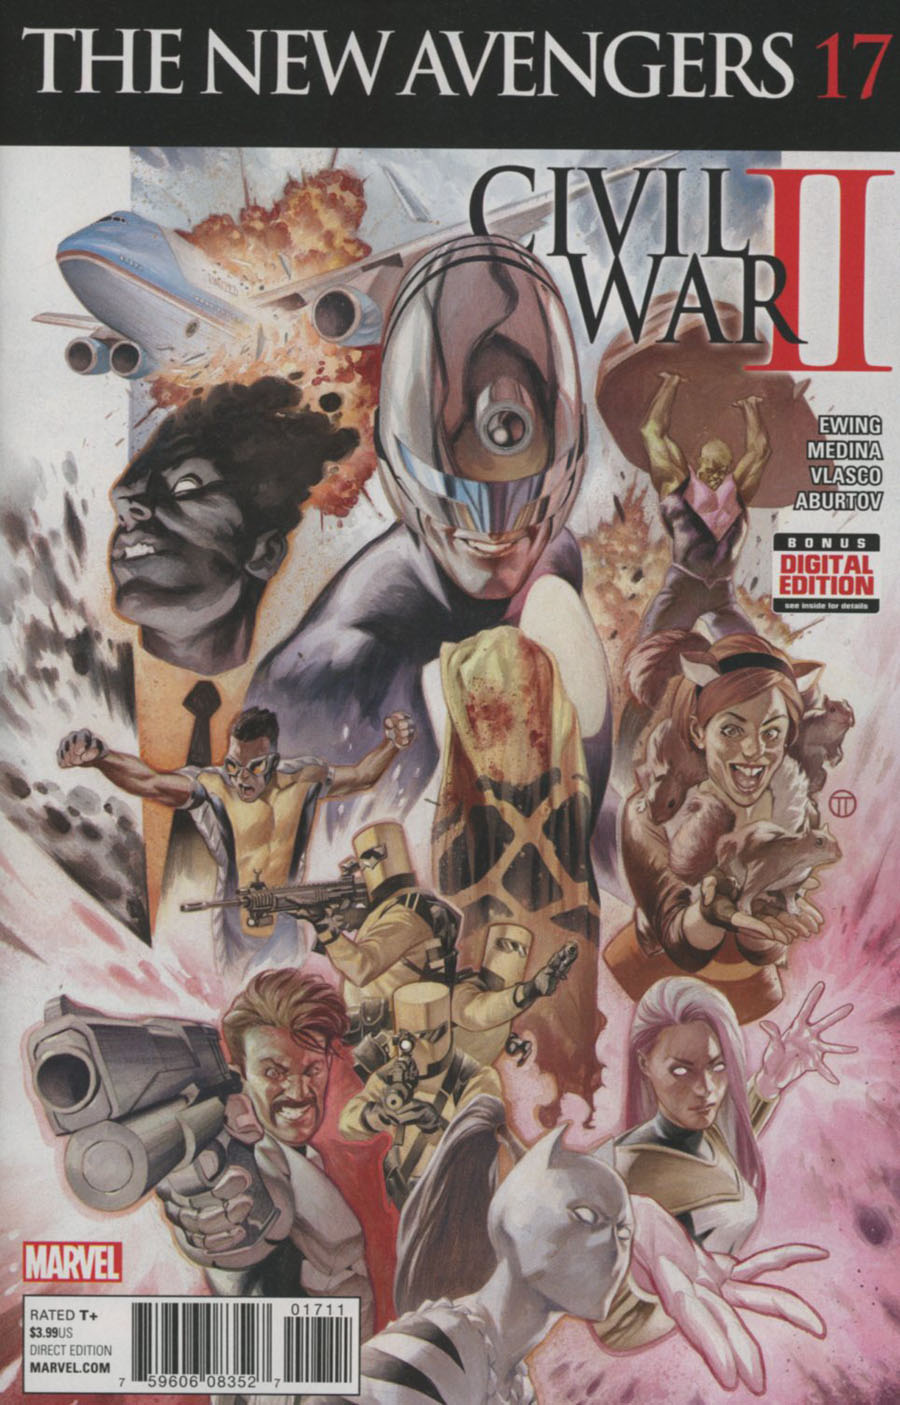 New Avengers Vol 4 #17 (Civil War II Tie-In)